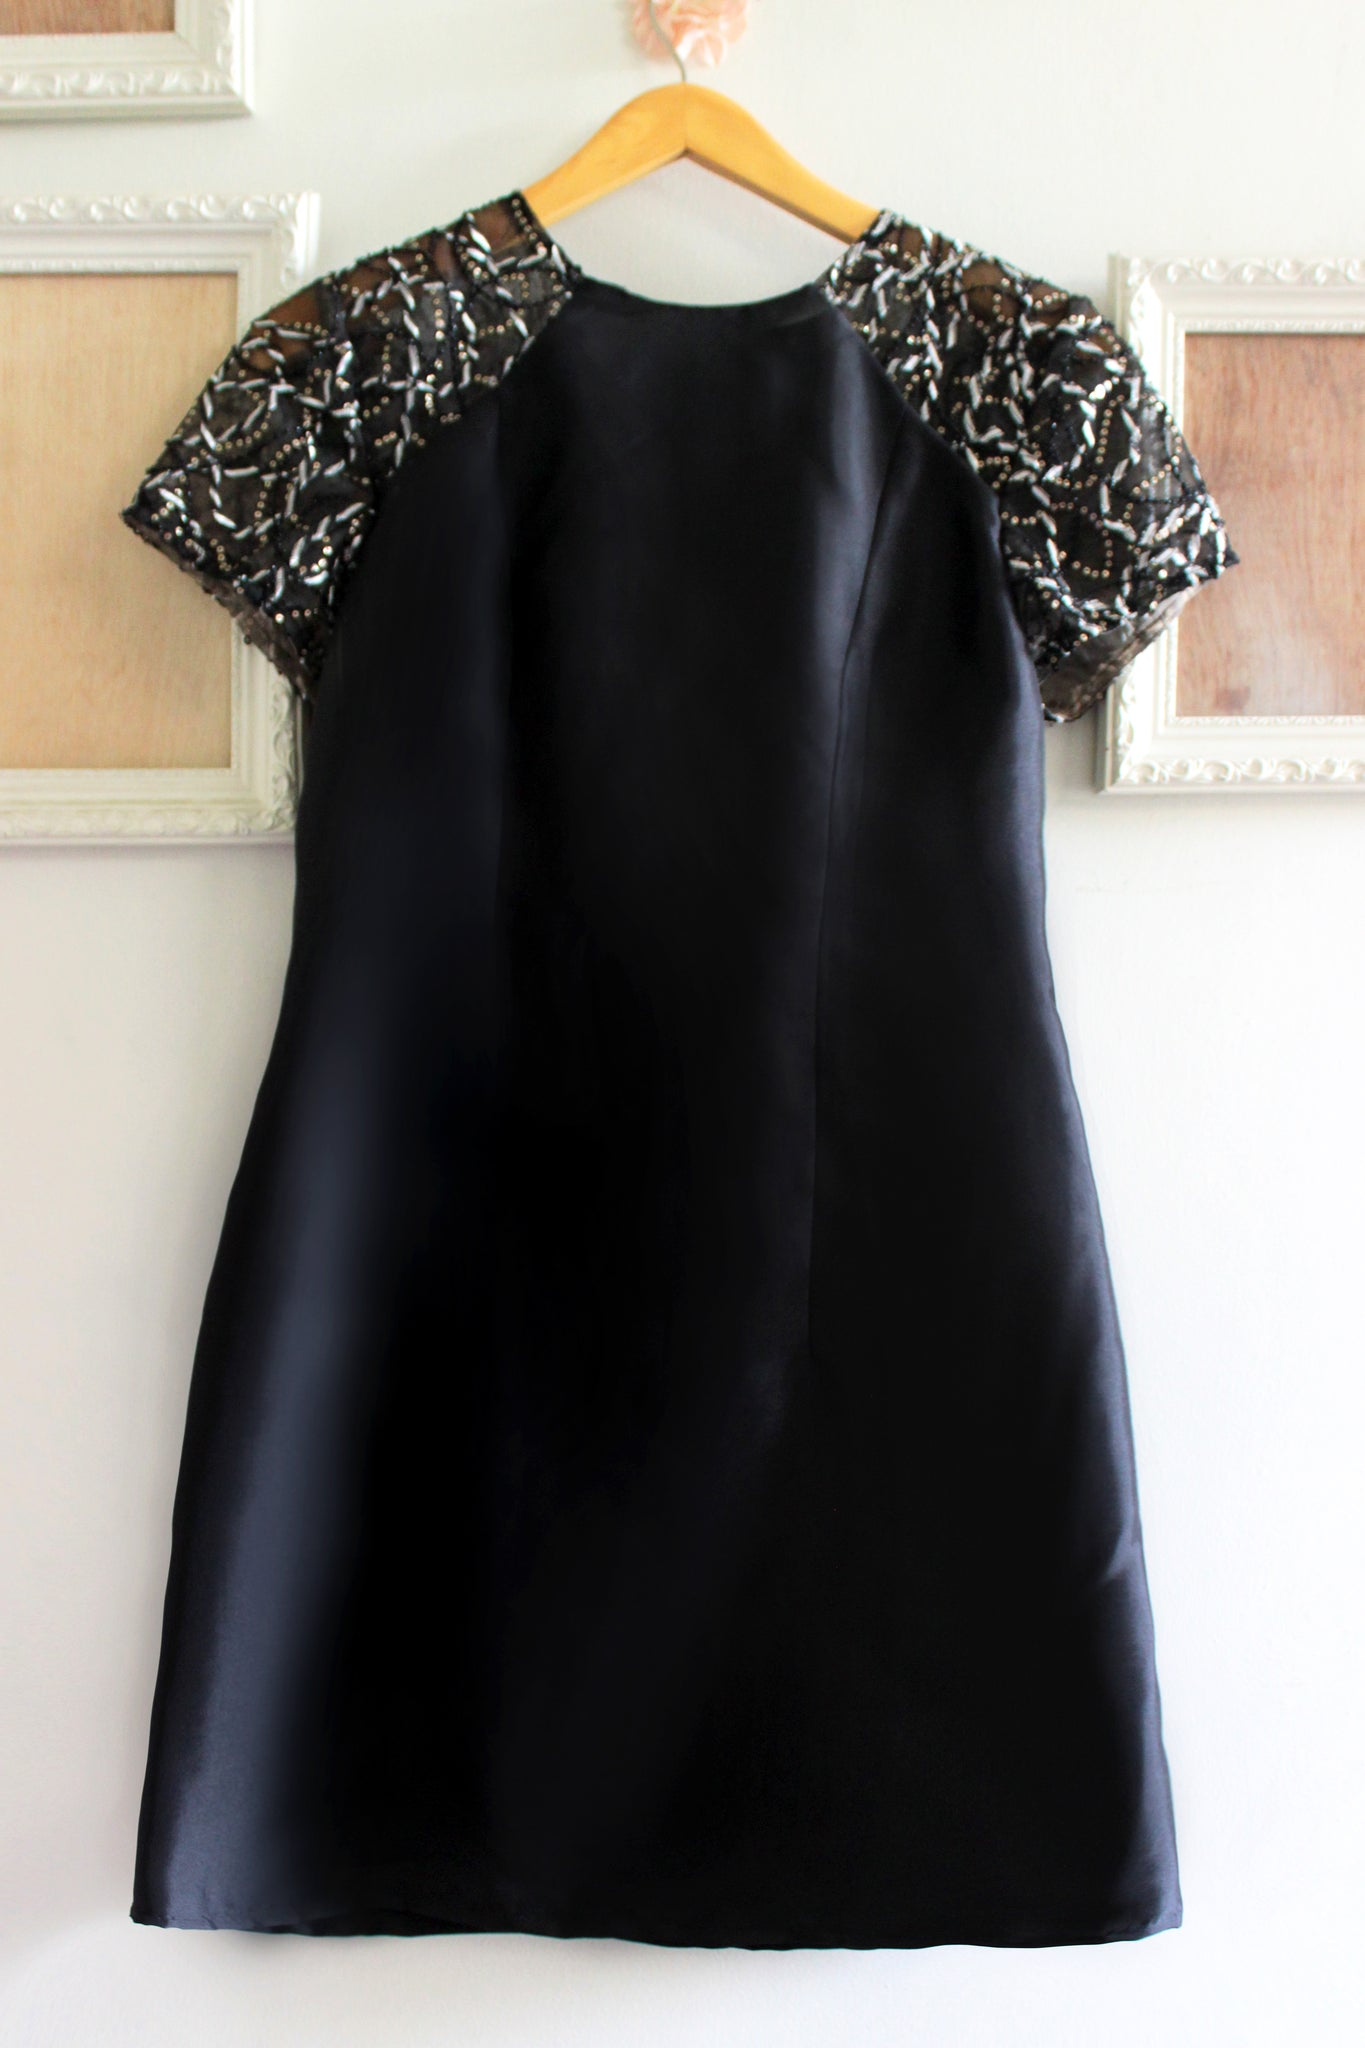 Xandar dress in black